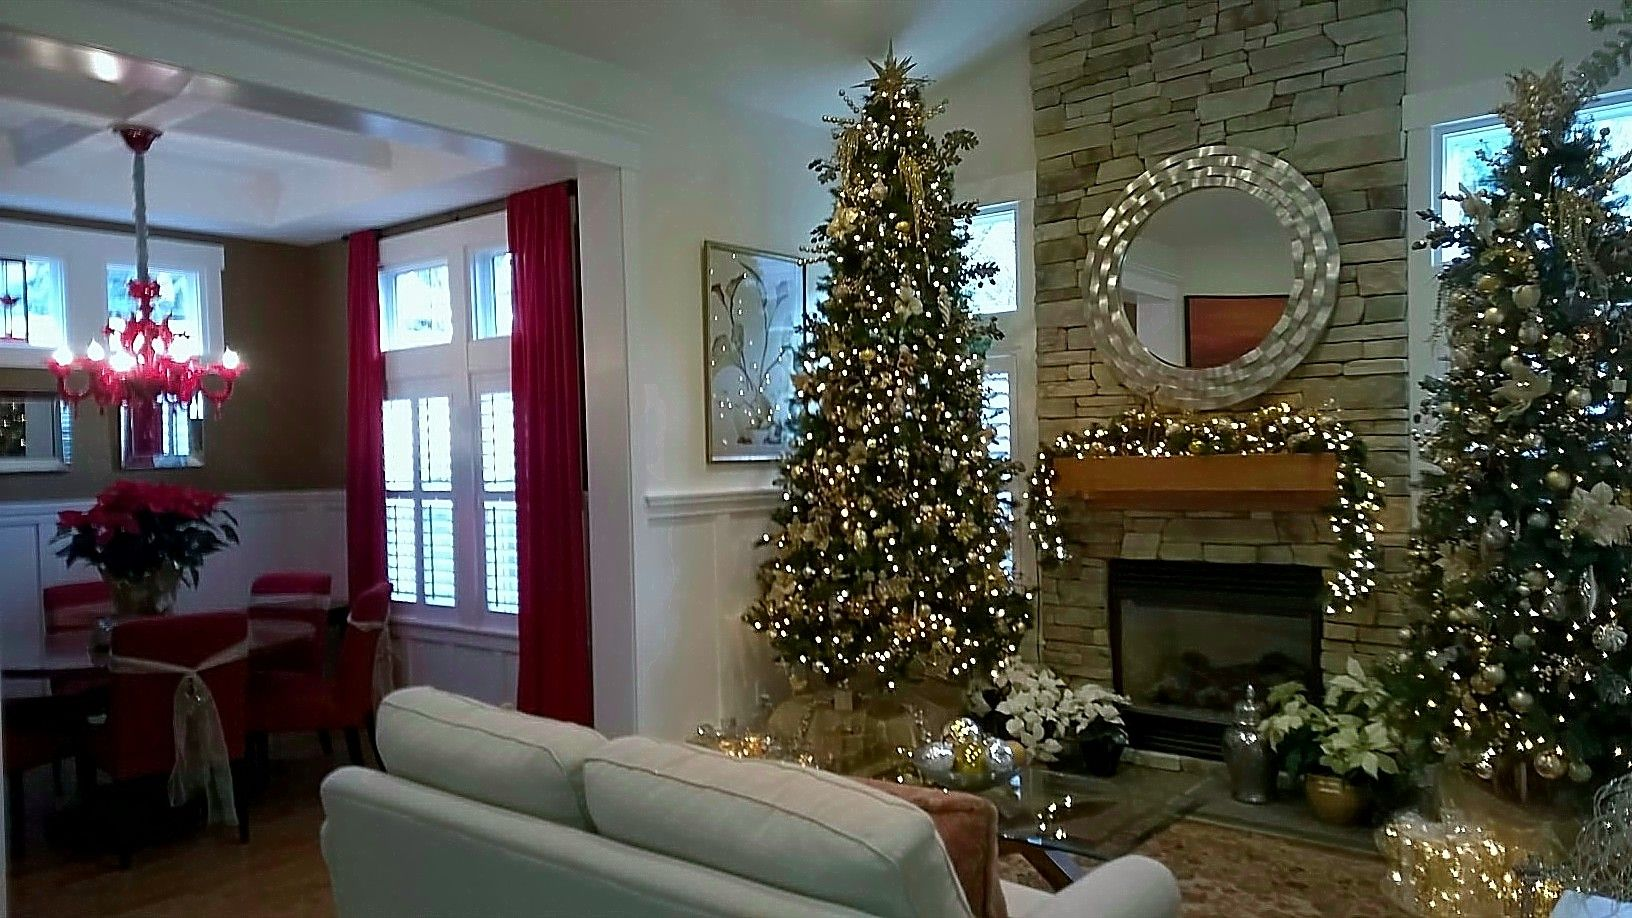 Two Christmas Trees In Living Room Decorated All In Gold Holiday Decor Tree Decorations Christmas Decorations